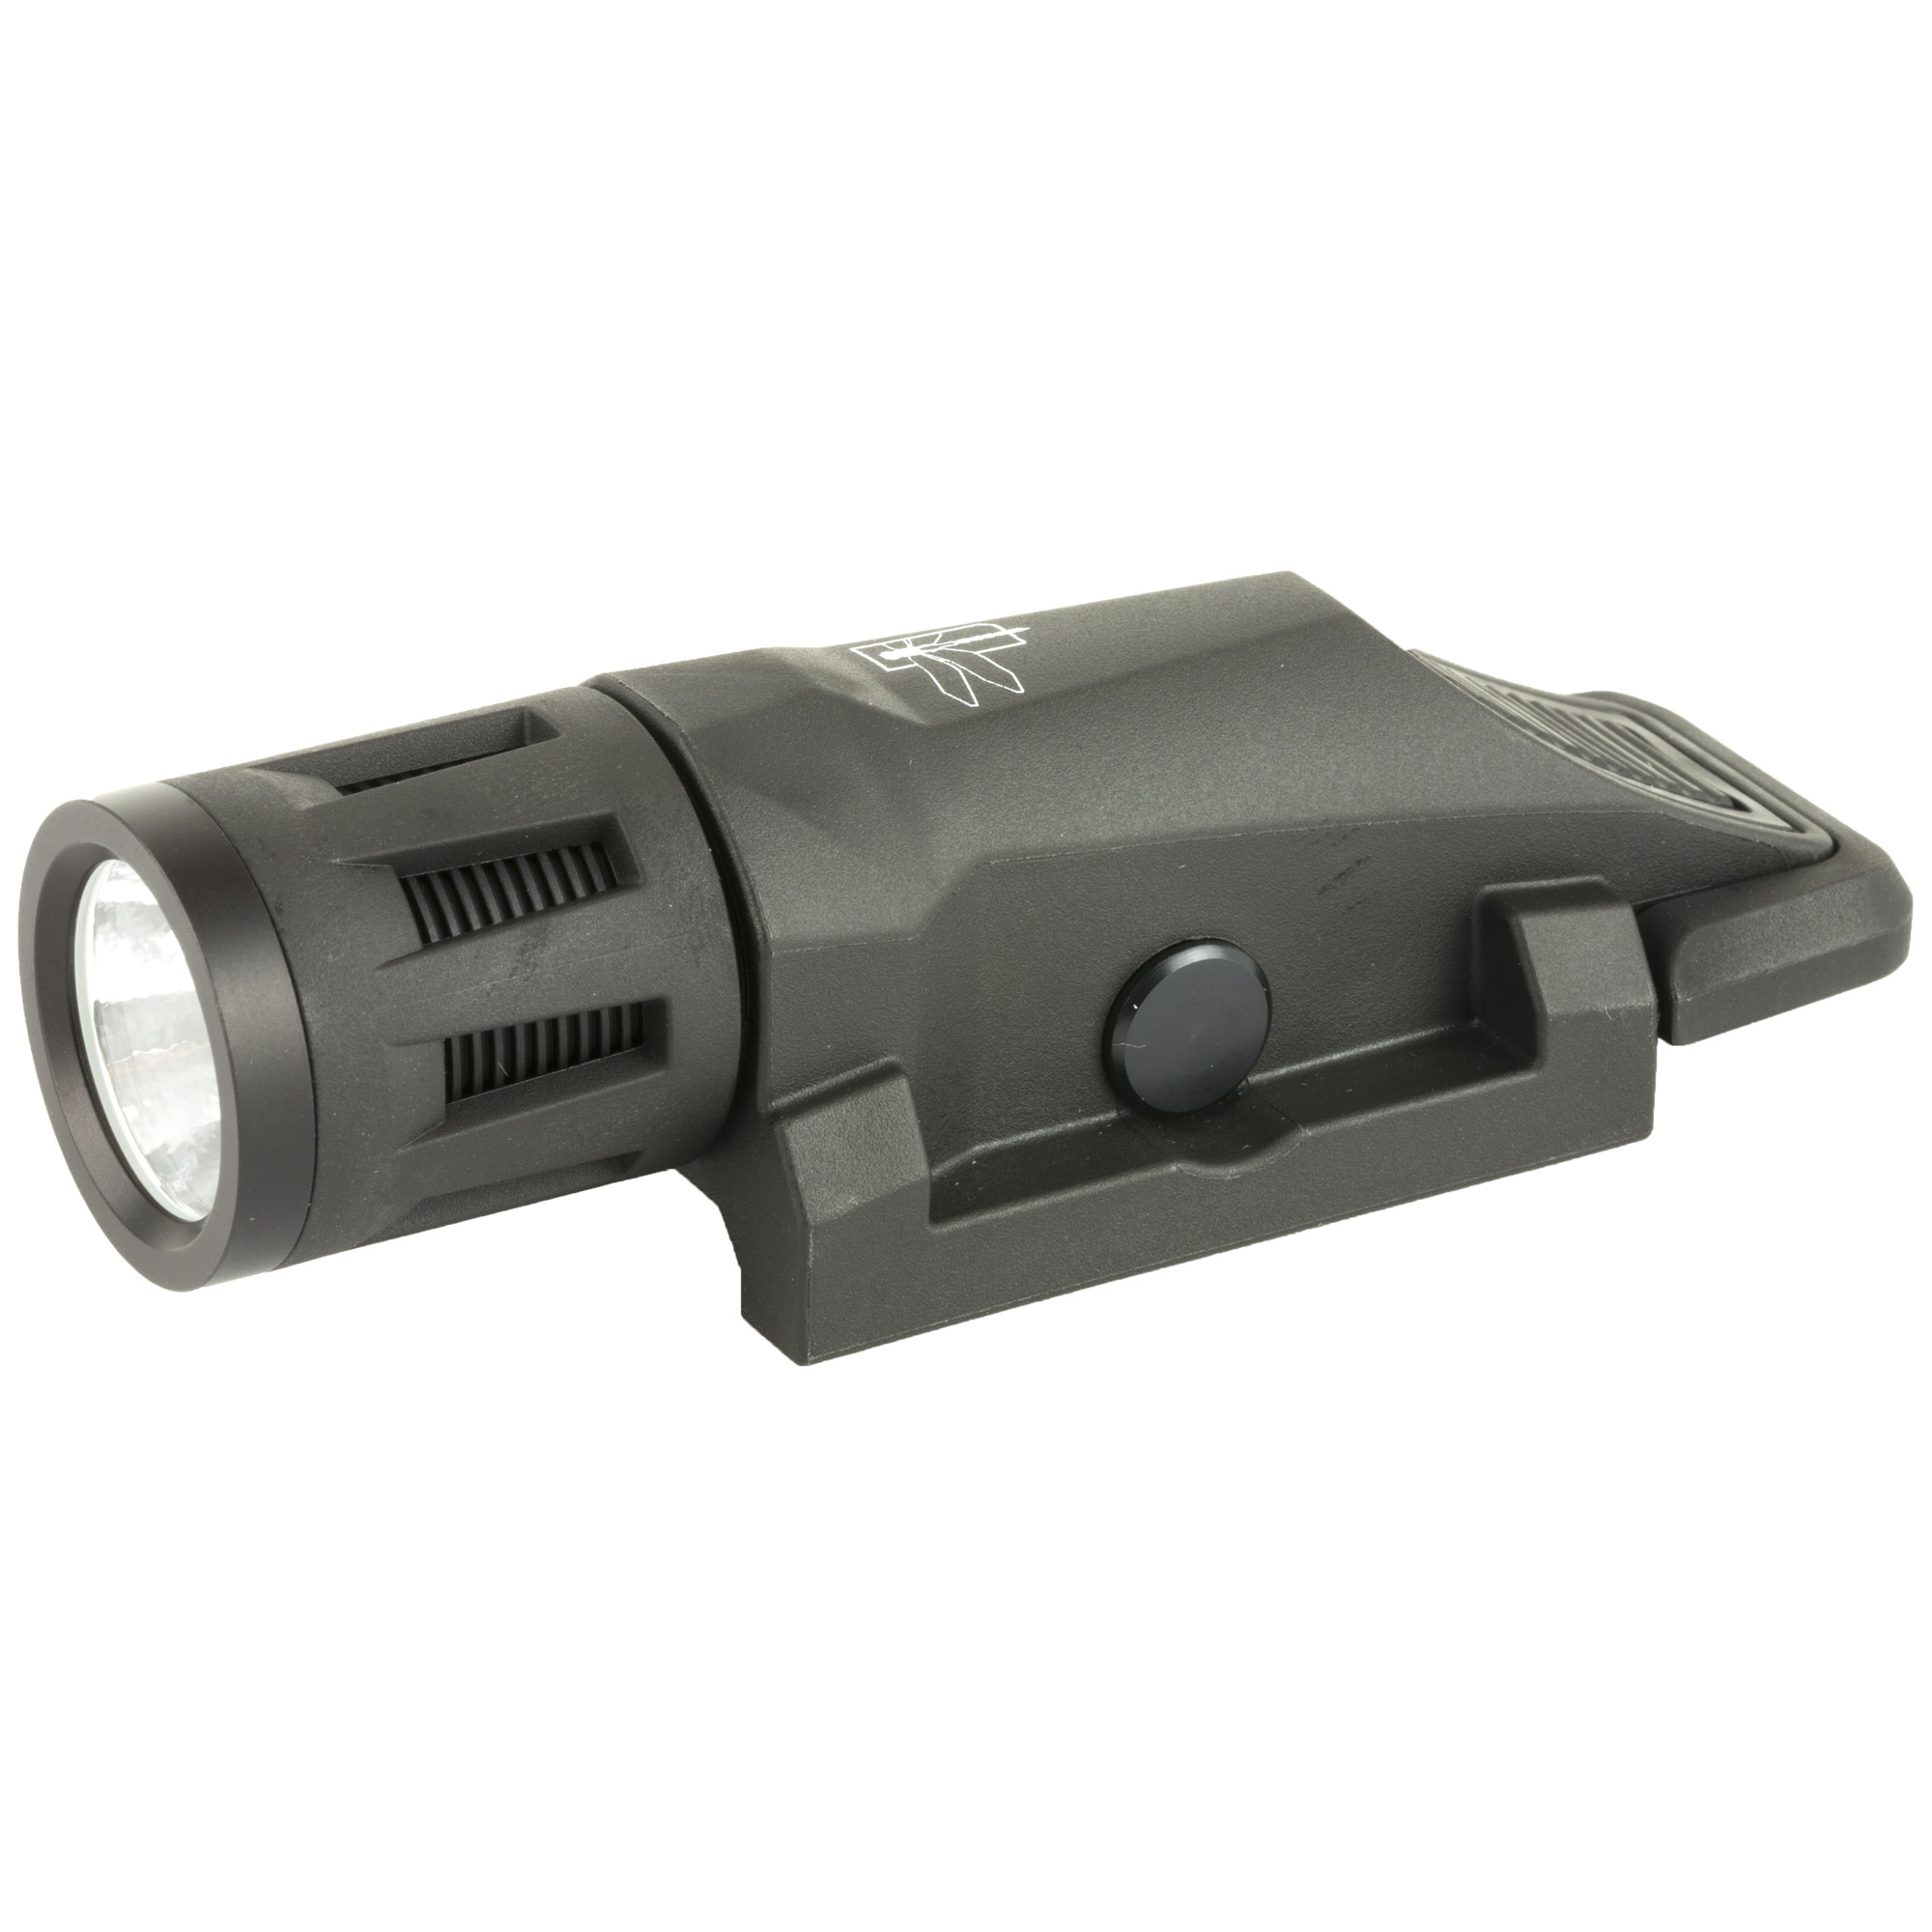 """Driven by Real-World Low Light Operational Needs. The NEW INFORCE(R) WML WHITE HSP was specked by Haley Strategic(TM) Partners for tactical low light applications. Running a white light with an upgraded 400 lumens of penetrating light with a tight beam for close- to mid-range applications"""" the WML 400L HSP also delivers a balanced peripheral light for discernment of the surrounding area."""